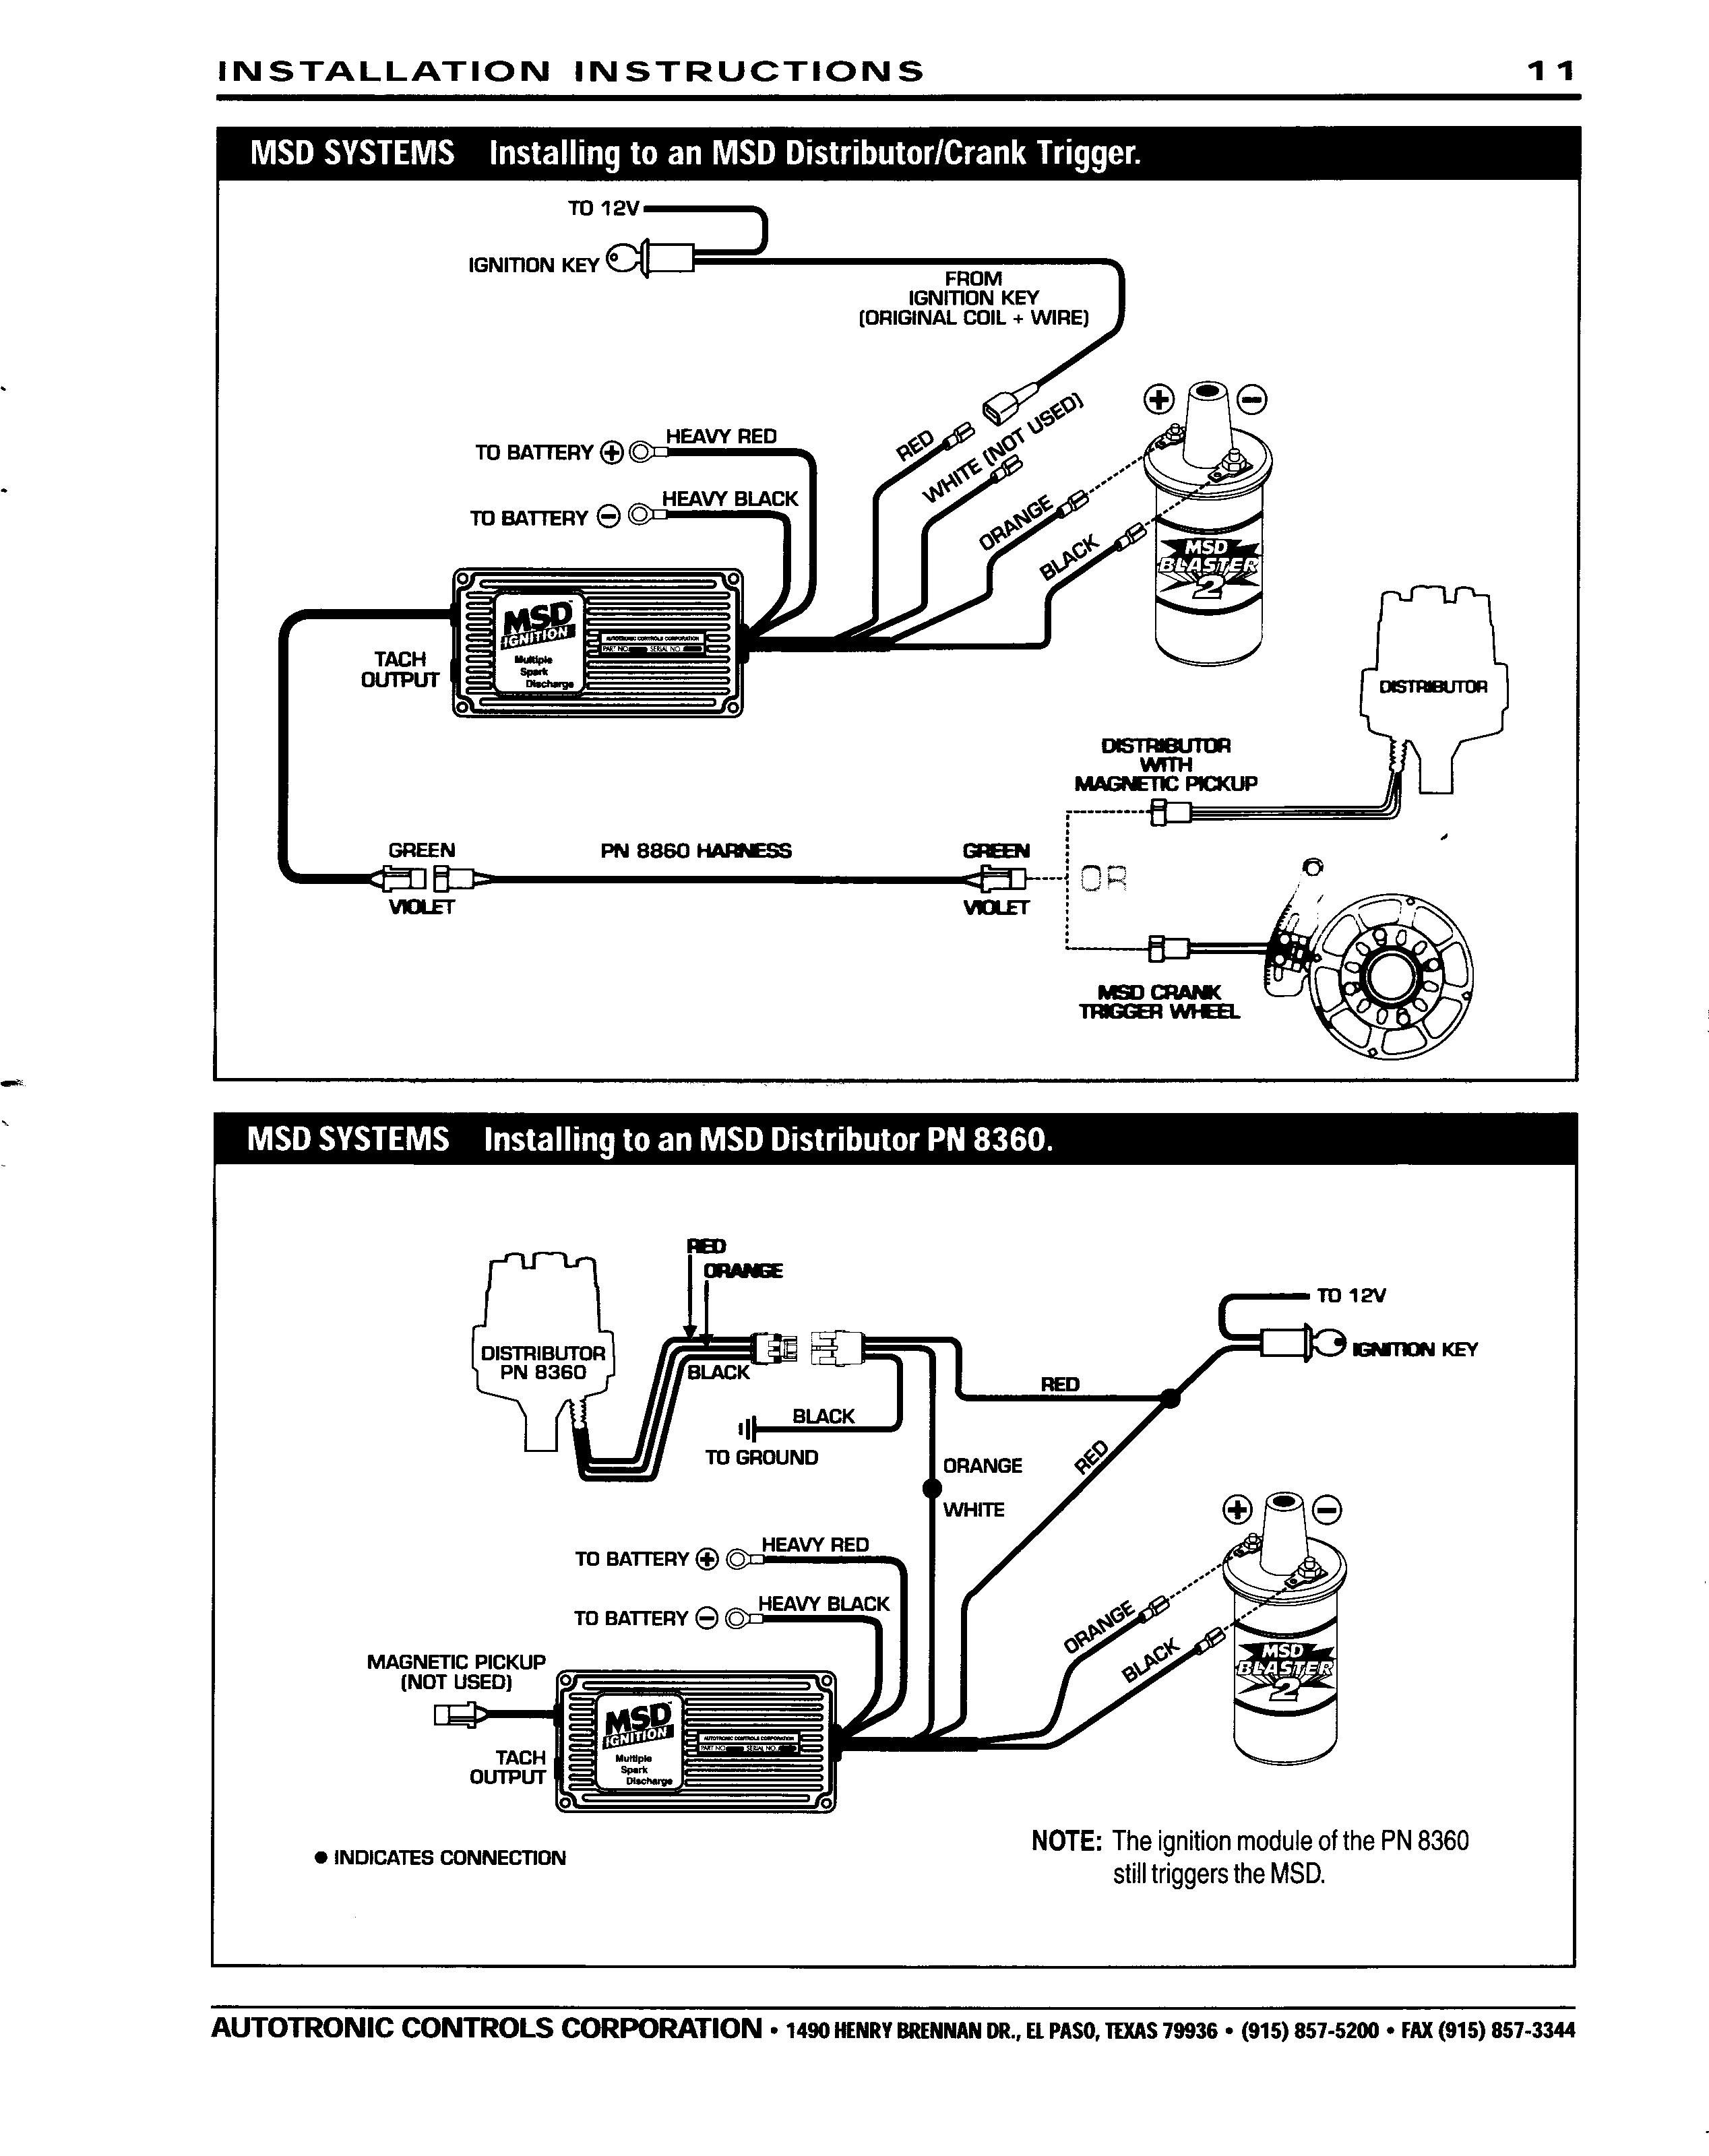 Msd Ignition Wiring Diagram Diagrams Schematics With Mallory ... on typical ignition system diagram, msd ignition installation, msd mounting, msd 2 step wiring-diagram, msd ignition system, msd 7al box diagram, meziere wiring diagram, msd ignition coil, ford alternator wiring diagram, msd hei wiring-diagram, auto meter wiring diagram, lokar wiring diagram, pertronix wiring diagram, painless wiring wiring diagram, msd ignition connector, taylor wiring diagram, nos wiring diagram, smittybilt wiring diagram, msd ford wiring diagrams, msd 6a wiring-diagram,